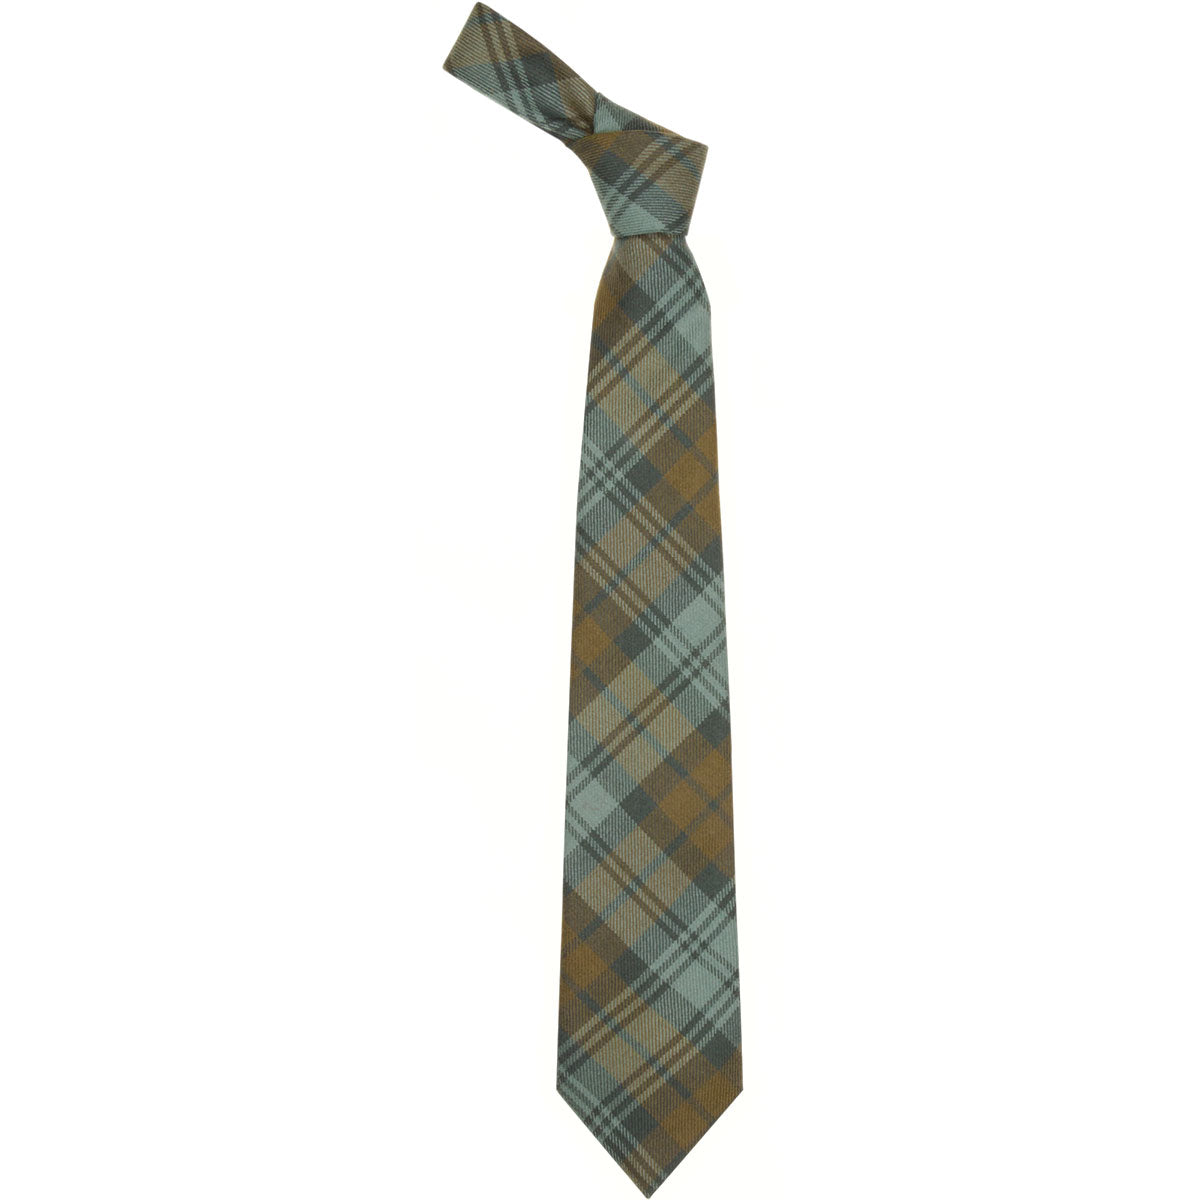 Black watch weathered tartan tie from Anderson Kilts